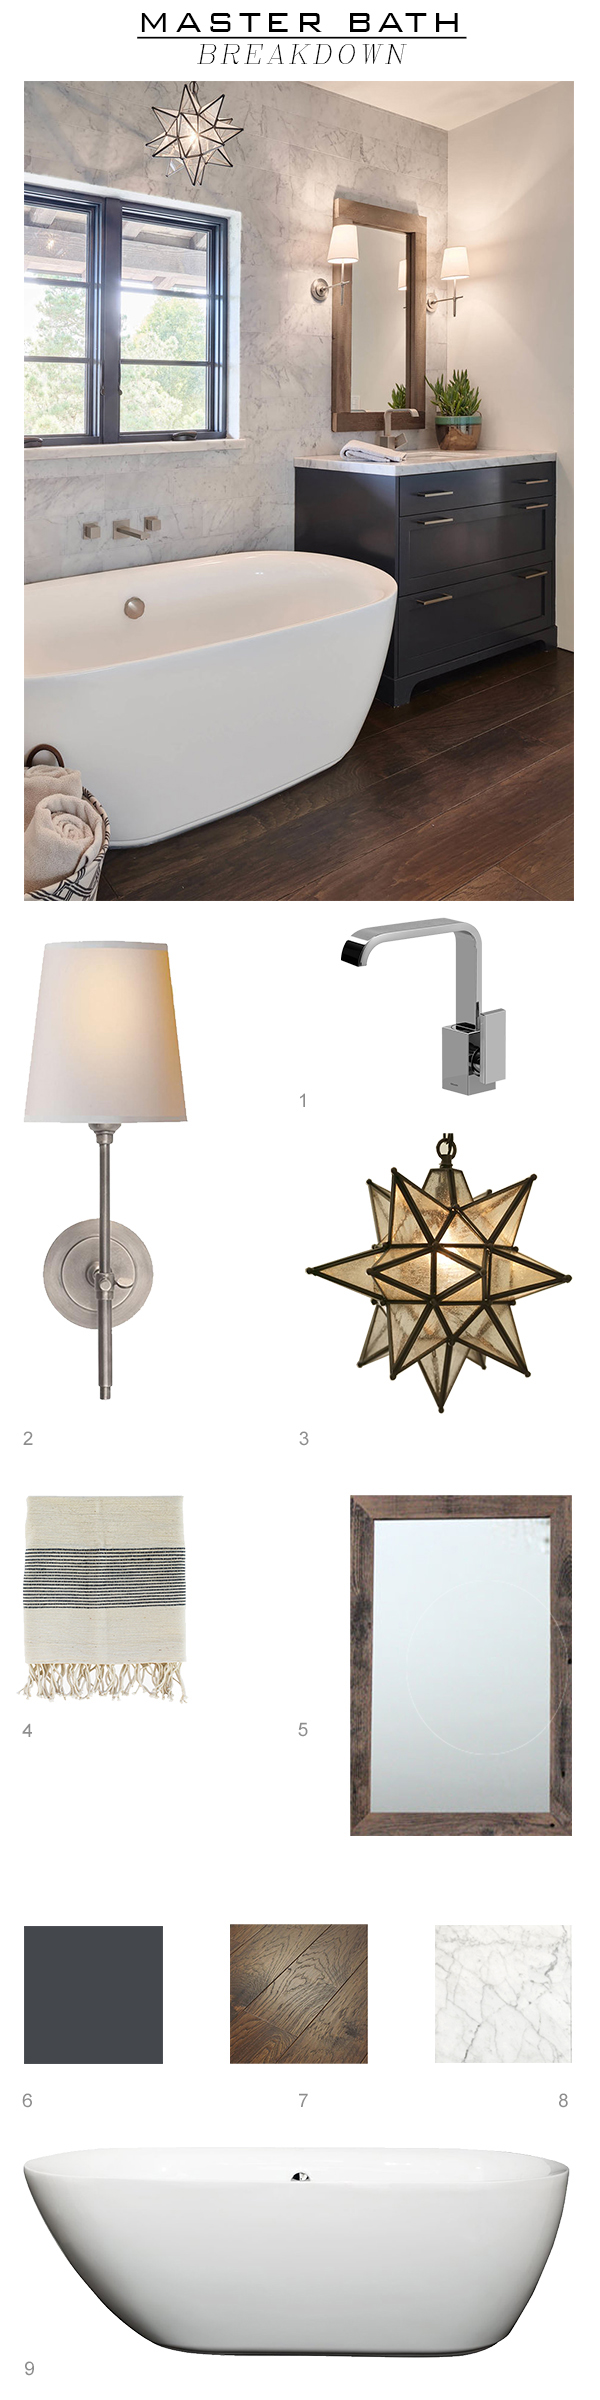 1.  Vanity Faucet   2.   Sconce   3.  Pendant   4.  Hand Towel   5. custom Wood Mirror  6.  Vanity Color   7.   Wood Flooring   8.  Marble Wall Tile   9.  The Tub     wanna see the whole house? Click  Yorkshire